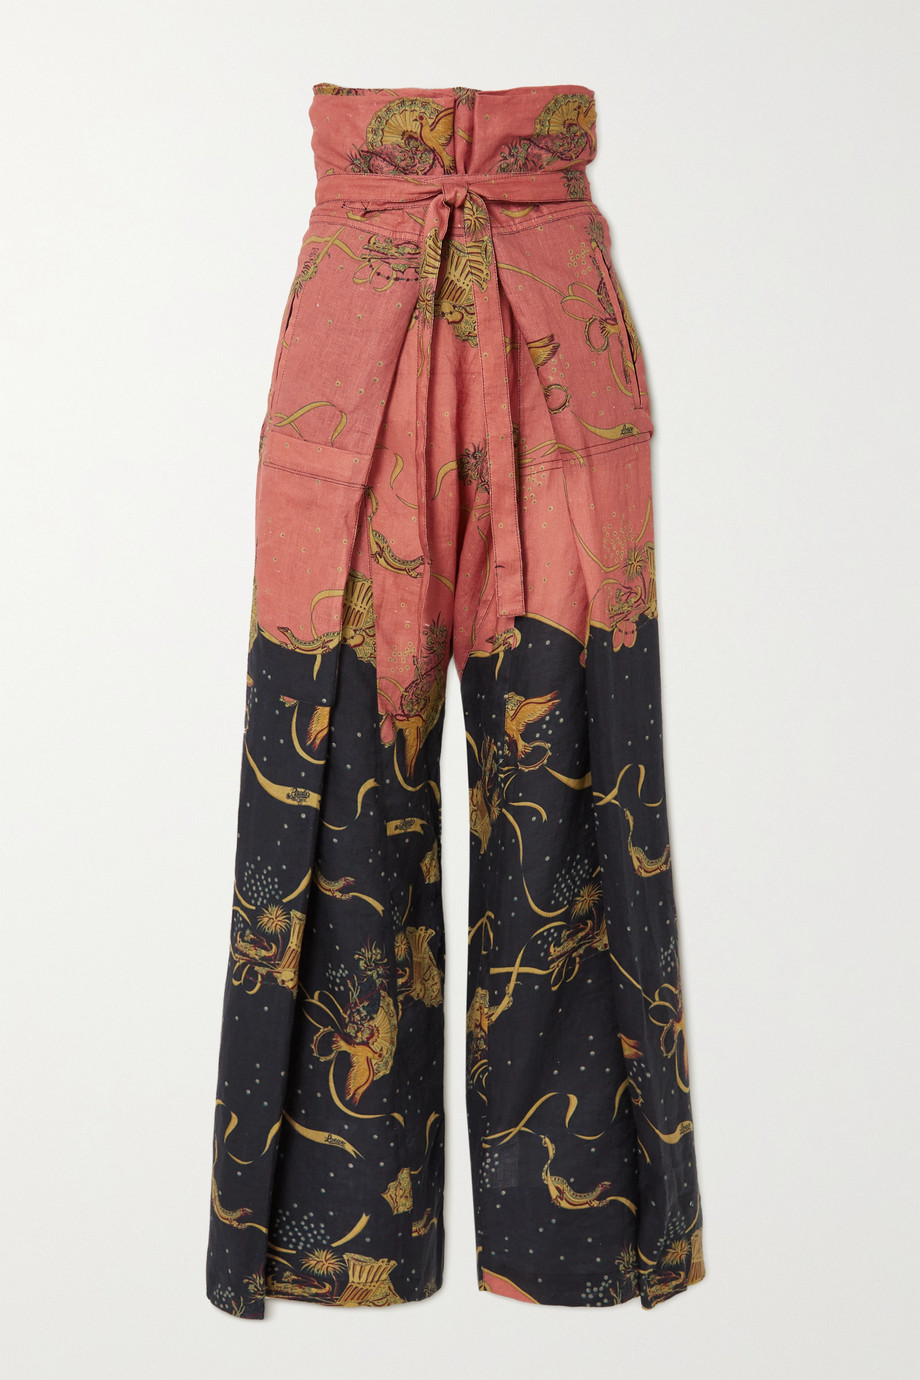 LOEWE + Paula's Ibiza belted printed linen and cotton-blend wide-leg pants